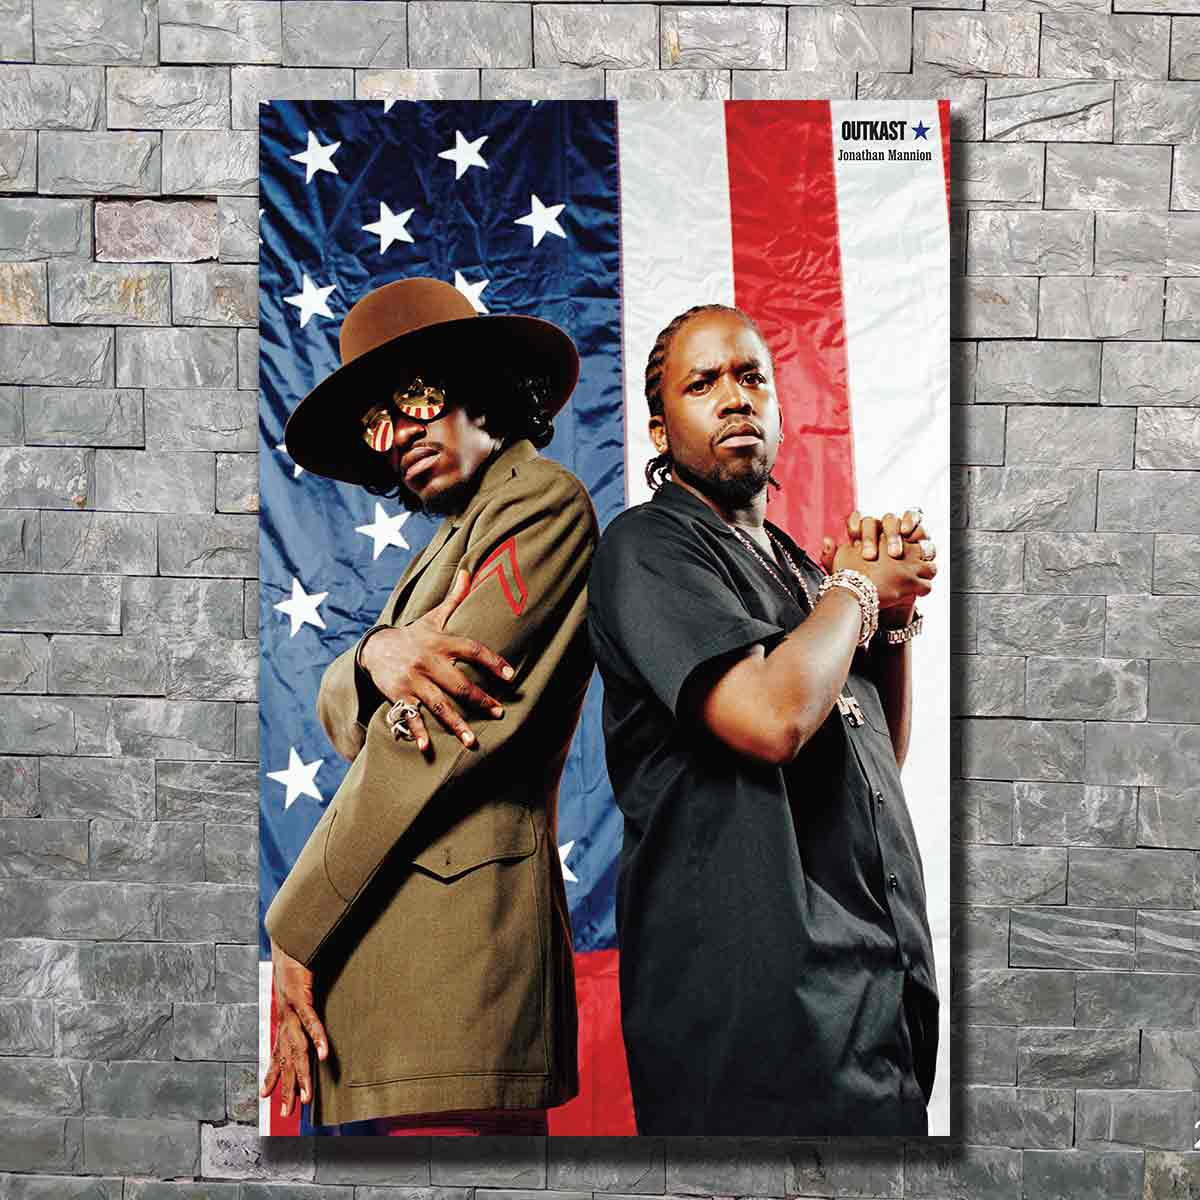 Art Posters Wall Canvas OUTKAST Stankonia Hip Hop Album Print Modern painting Home Decor picture14x21 12x18 24x36 27x40 image